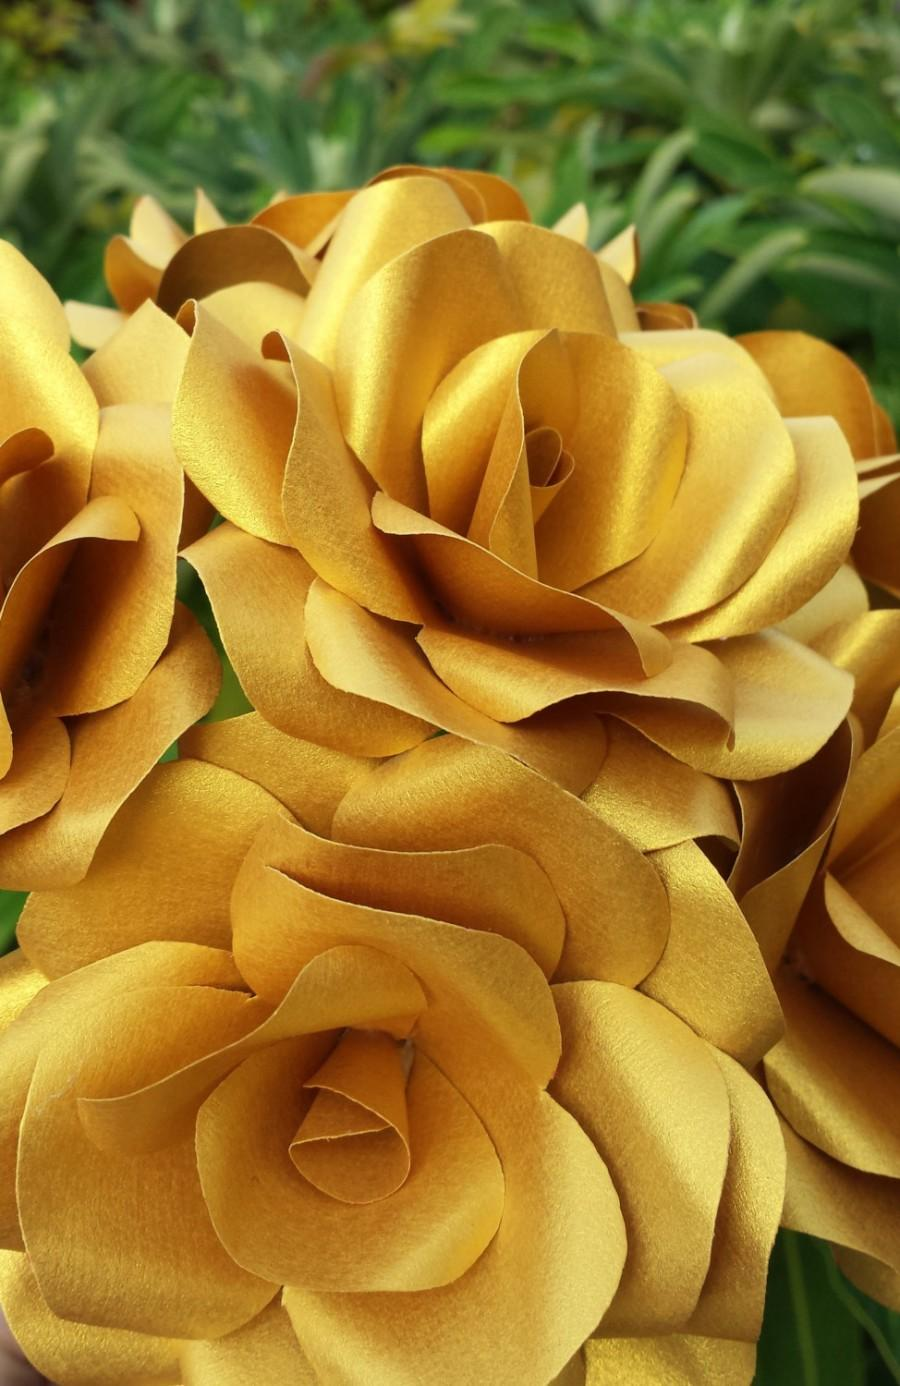 6 x gold paper roses handmade paper flowers christmas flowers christmas decorations - Christmas Flower Decorations